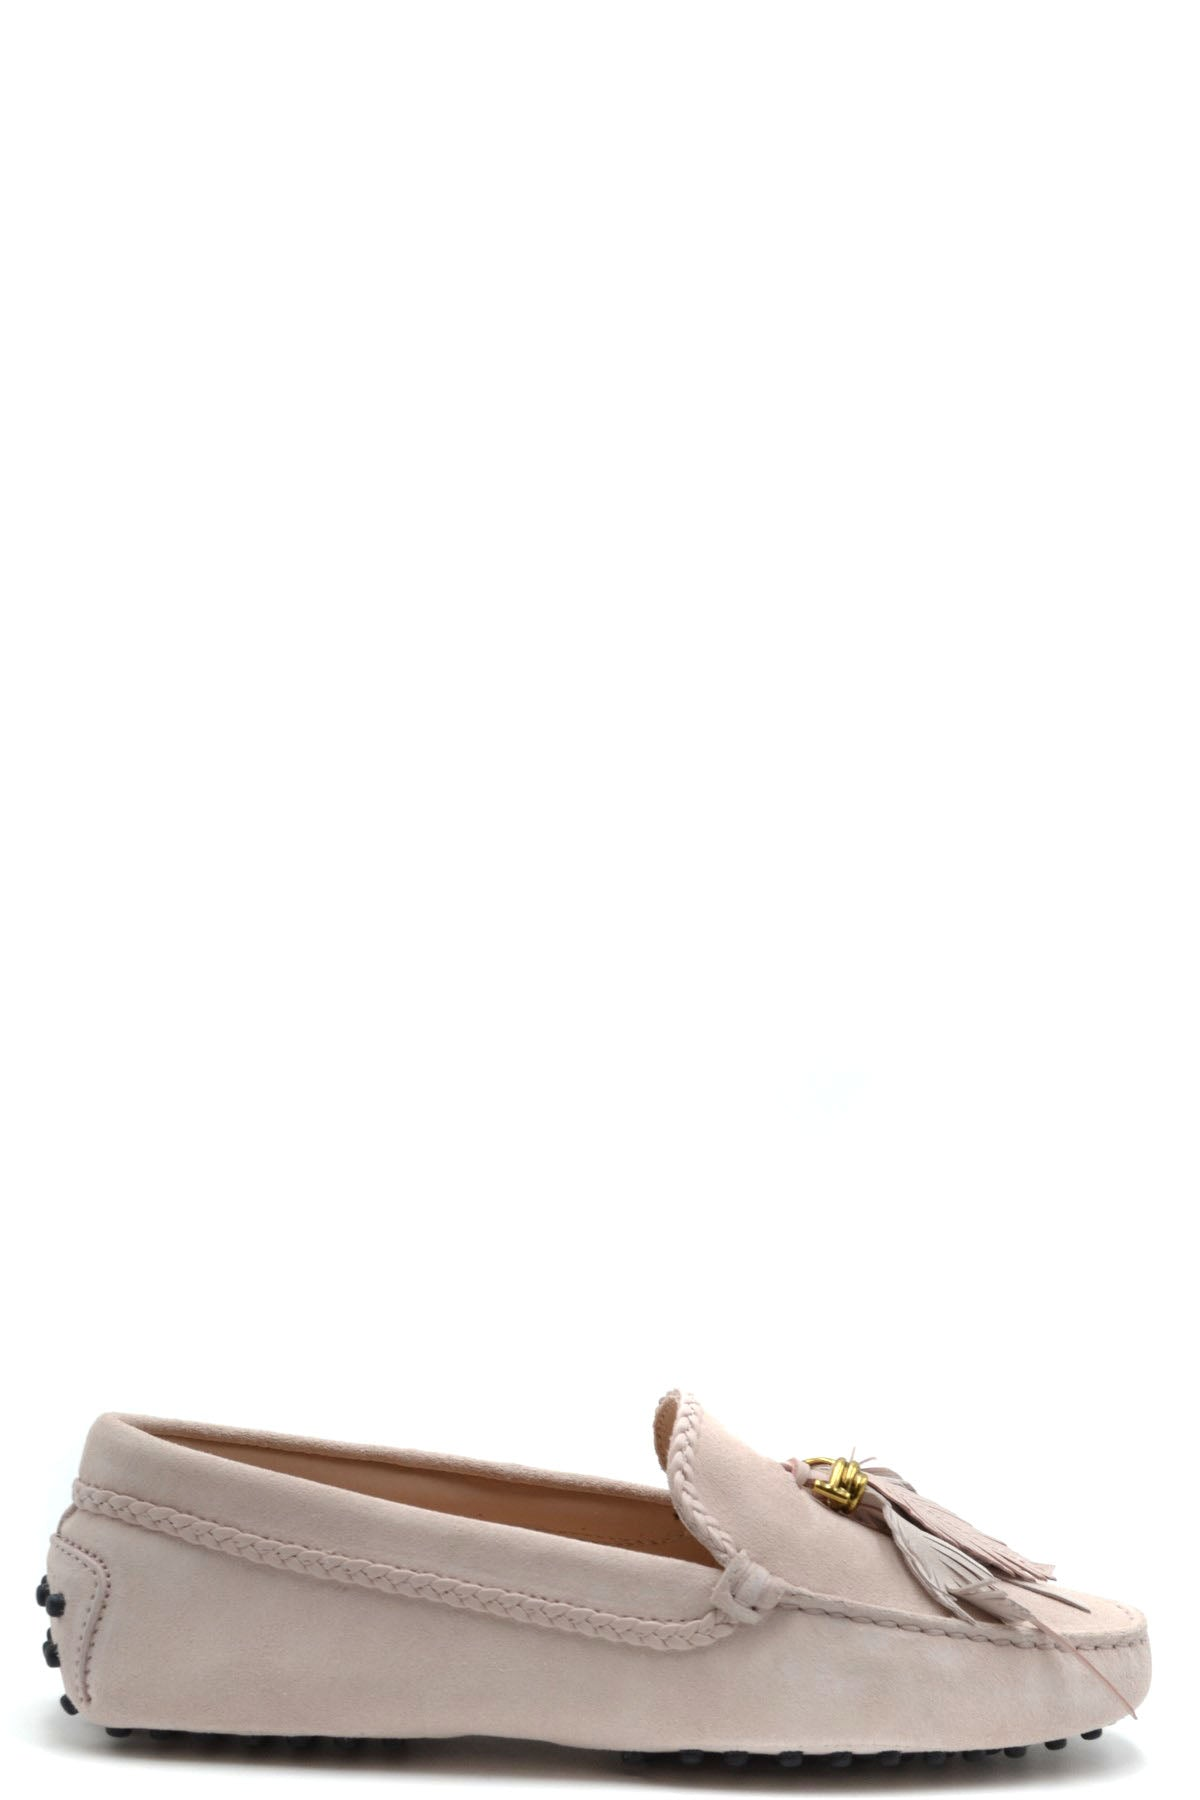 Shoes Tod'S-36-Product Details Type Of Accessory: ShoesTerms: New With LabelYear: 2019Main Color: Antique PinkGender: WomanMade In: ItalyManufacturer Part Number: Xxw00G0Ar80Ckom025Size: EuSeason: Spring / SummerComposition: Chamois 100%-Keyomi-Sook